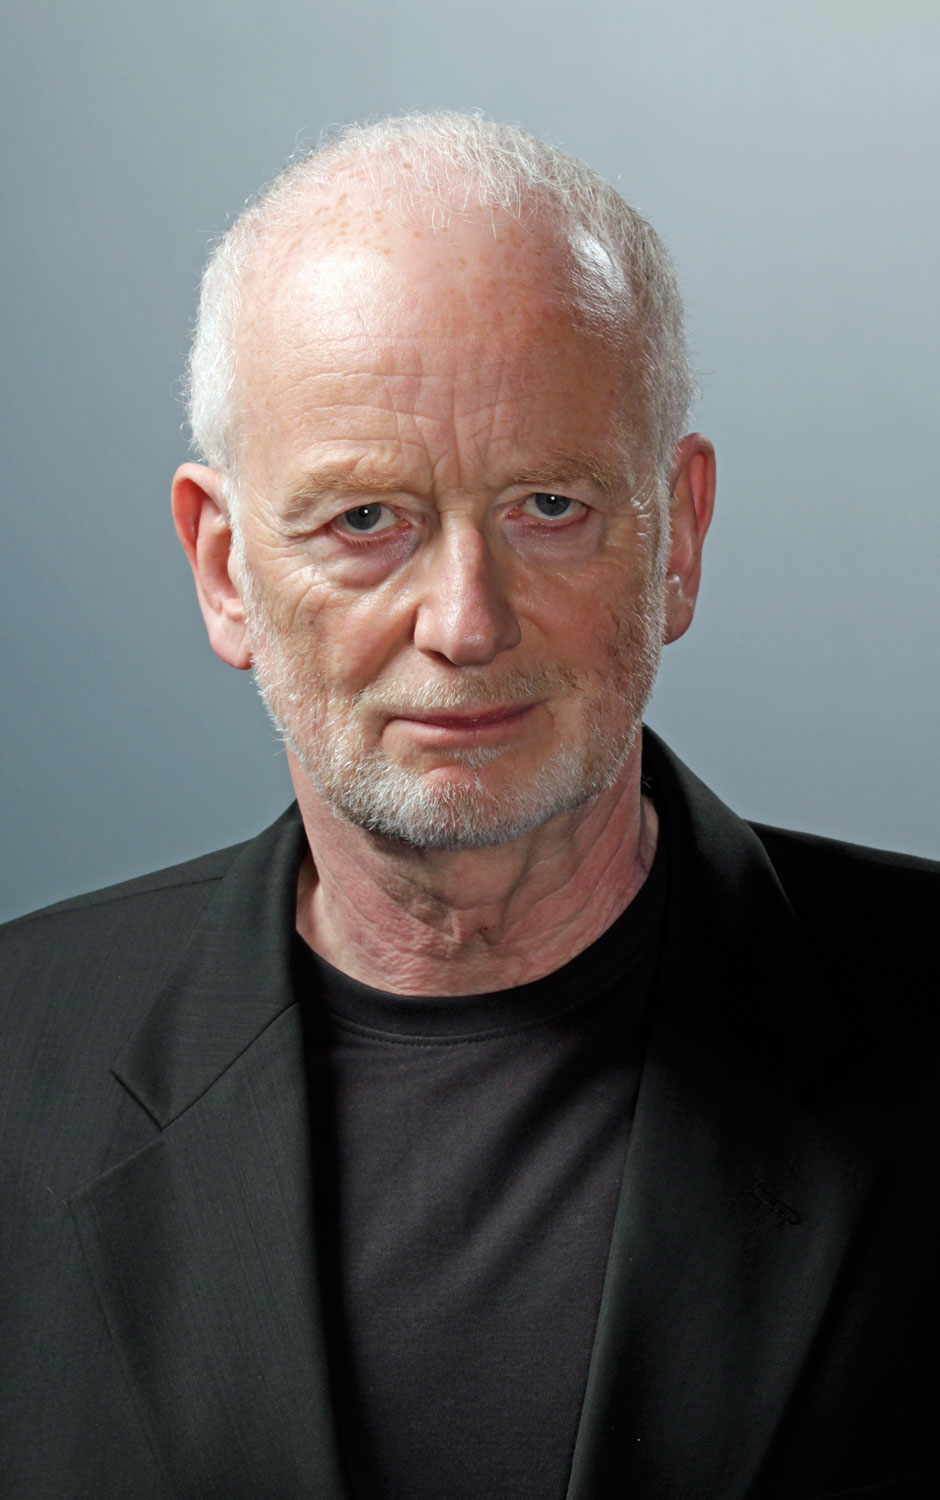 actor who played the emperor in return of the jedi